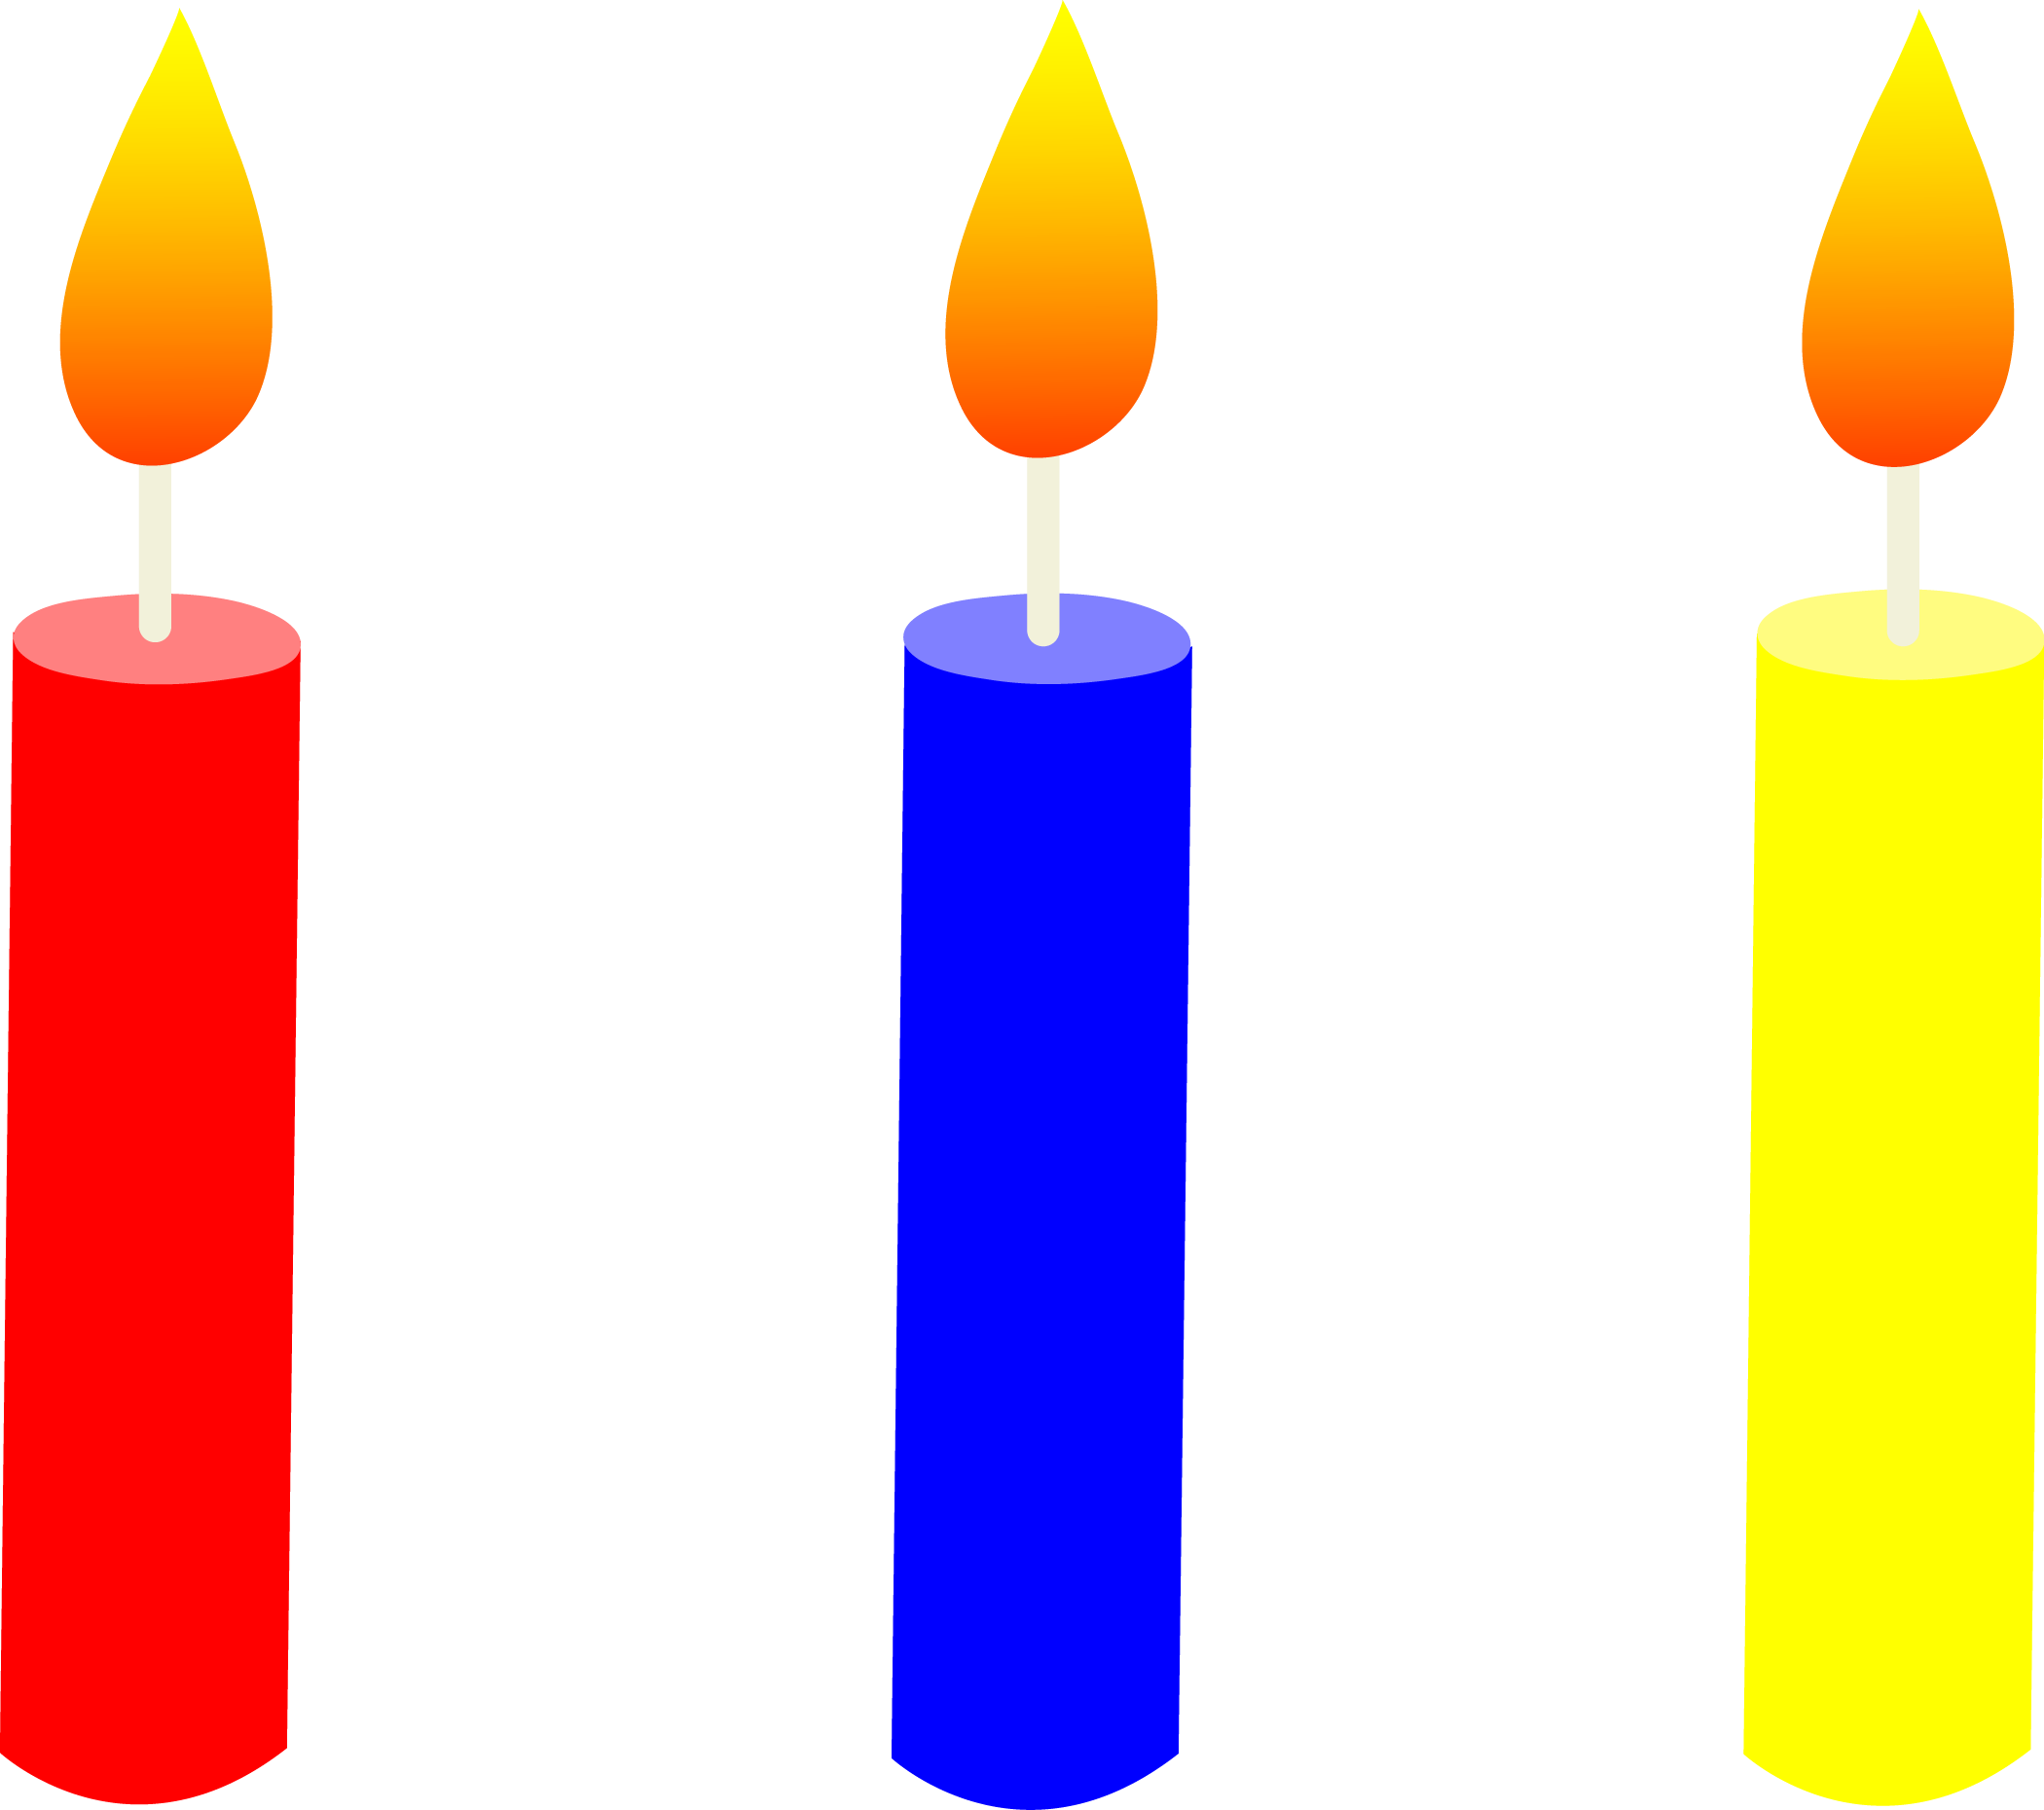 Candles clipart lit, Candles lit Transparent FREE for.